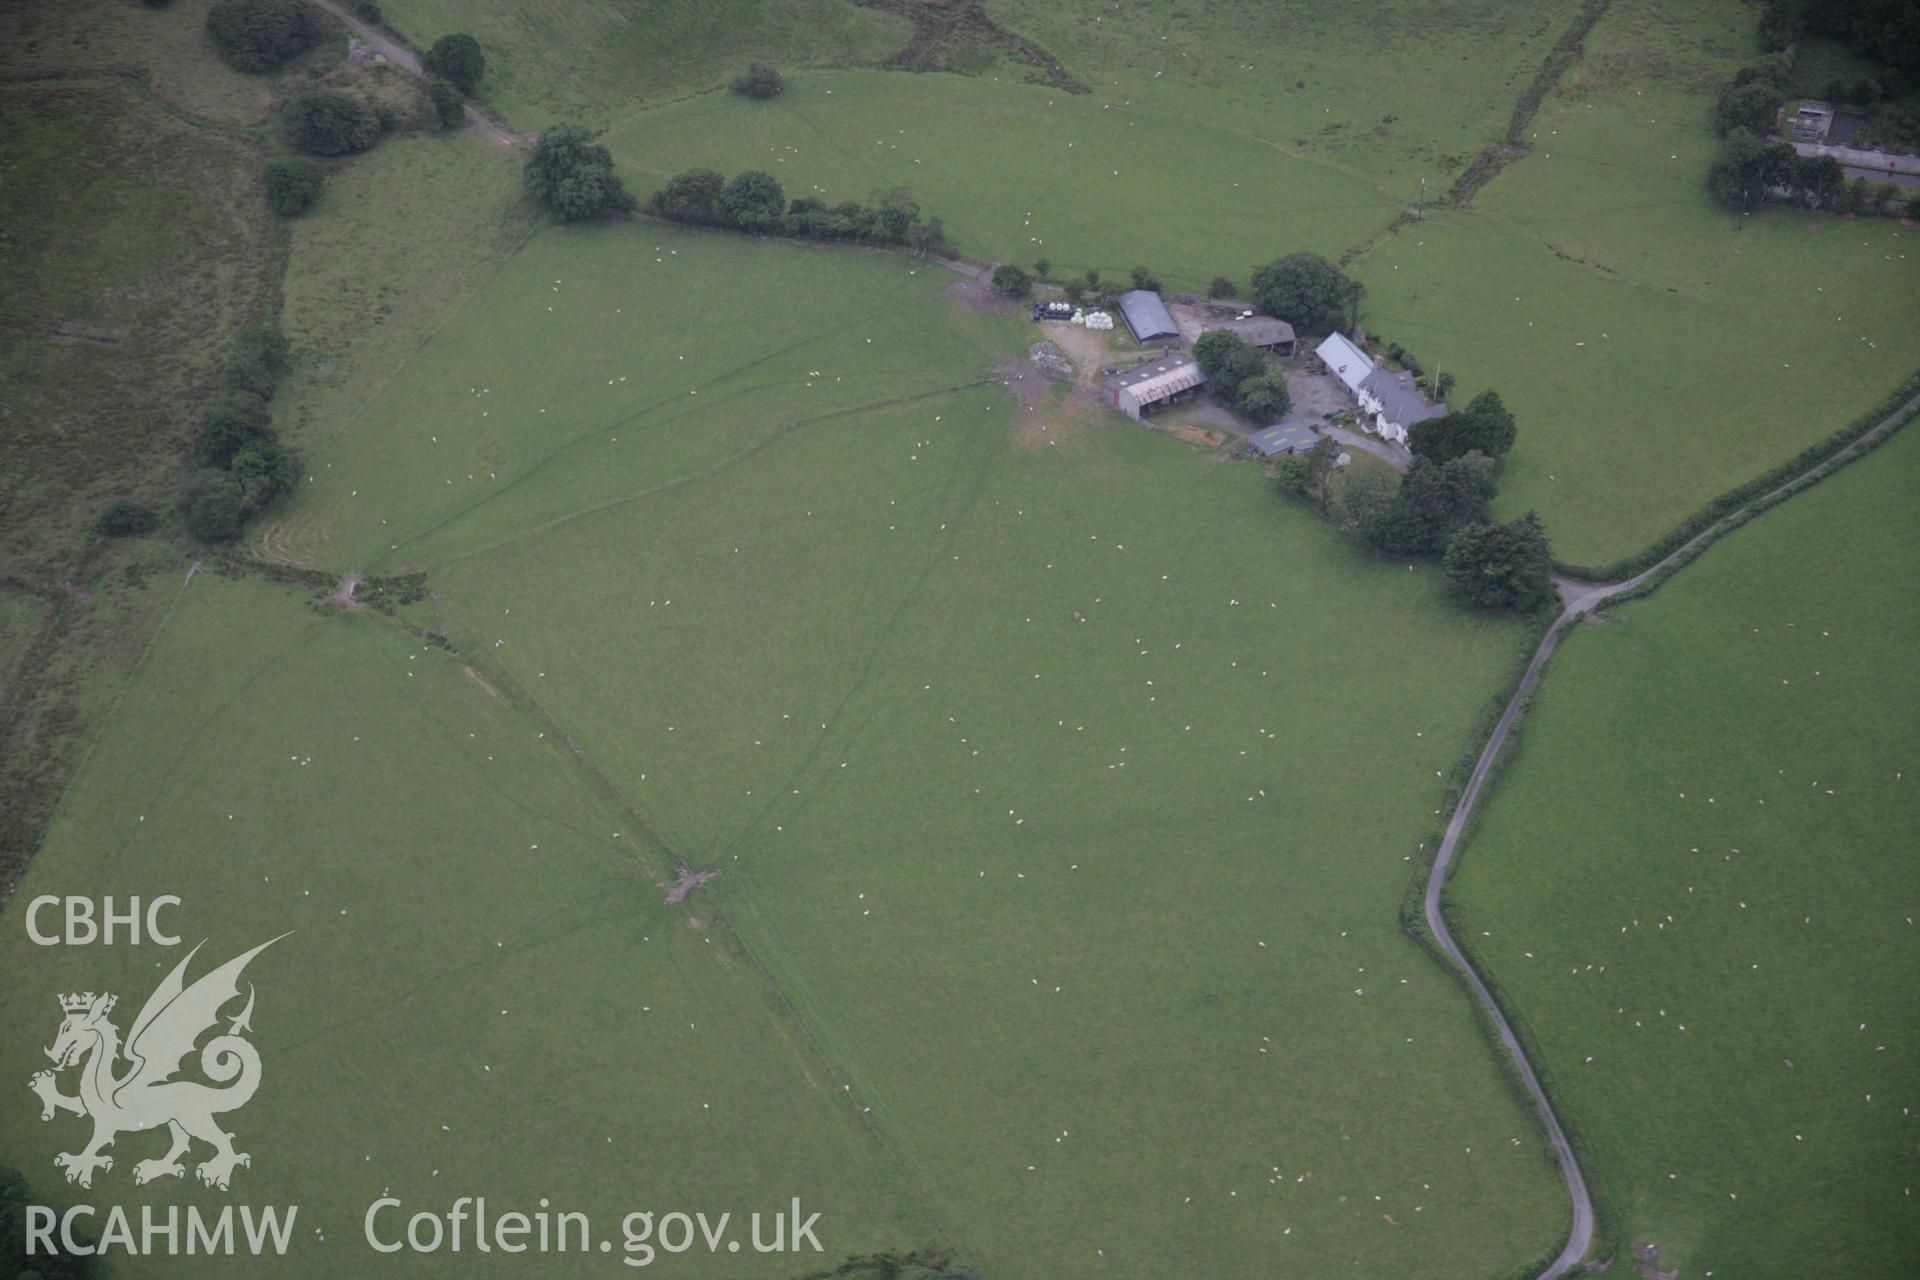 RCAHMW digital colour oblique photograph of Cefn Gaer Roman Fort. Taken on 18/07/2005 by T.G. Driver.